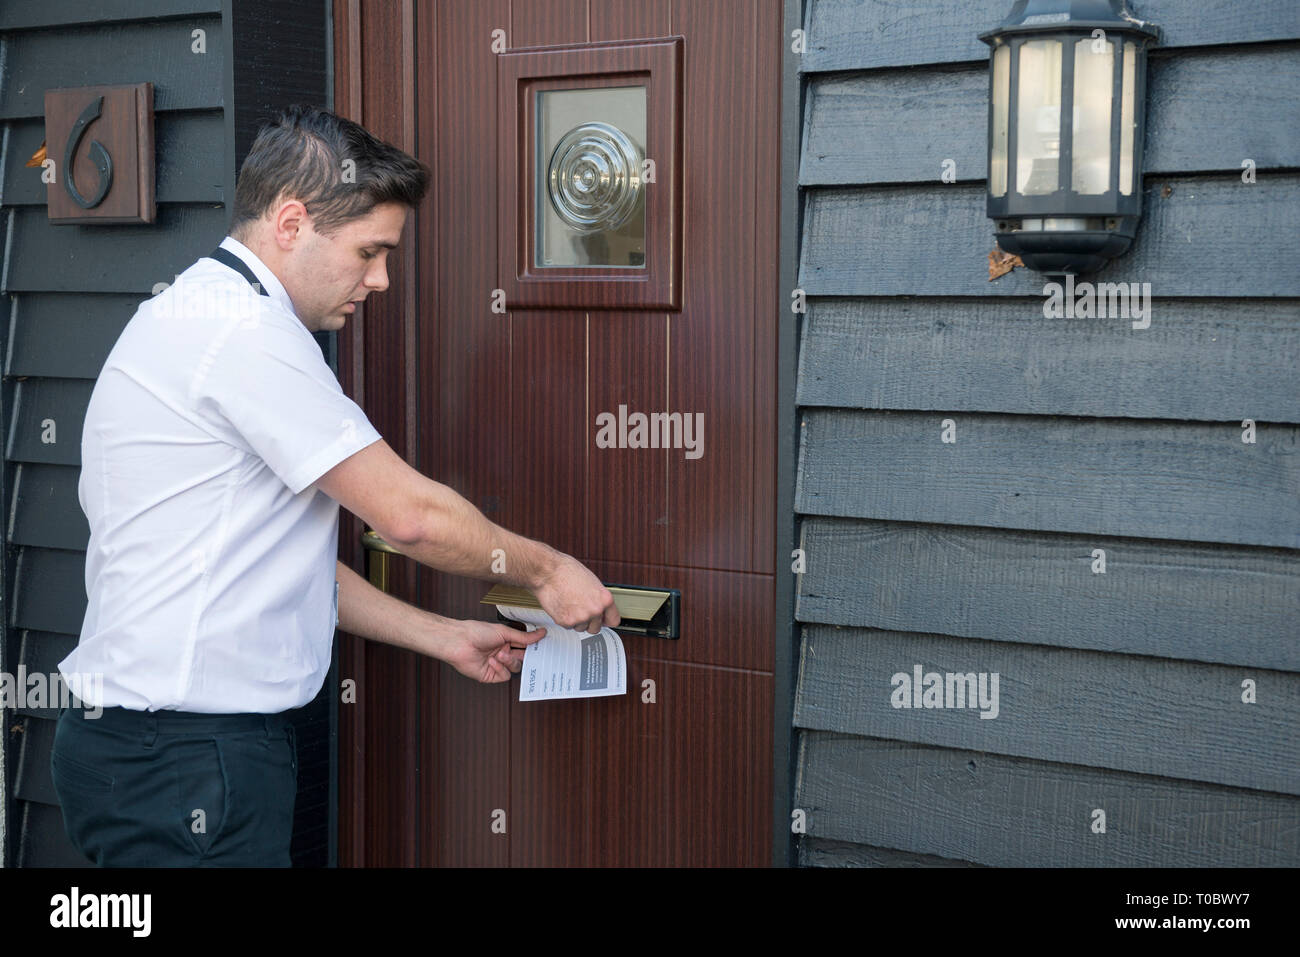 A white male worker / salesman post a letter / note / missed called card for an appointment through the letterbox of a front door of someones home. - Stock Image